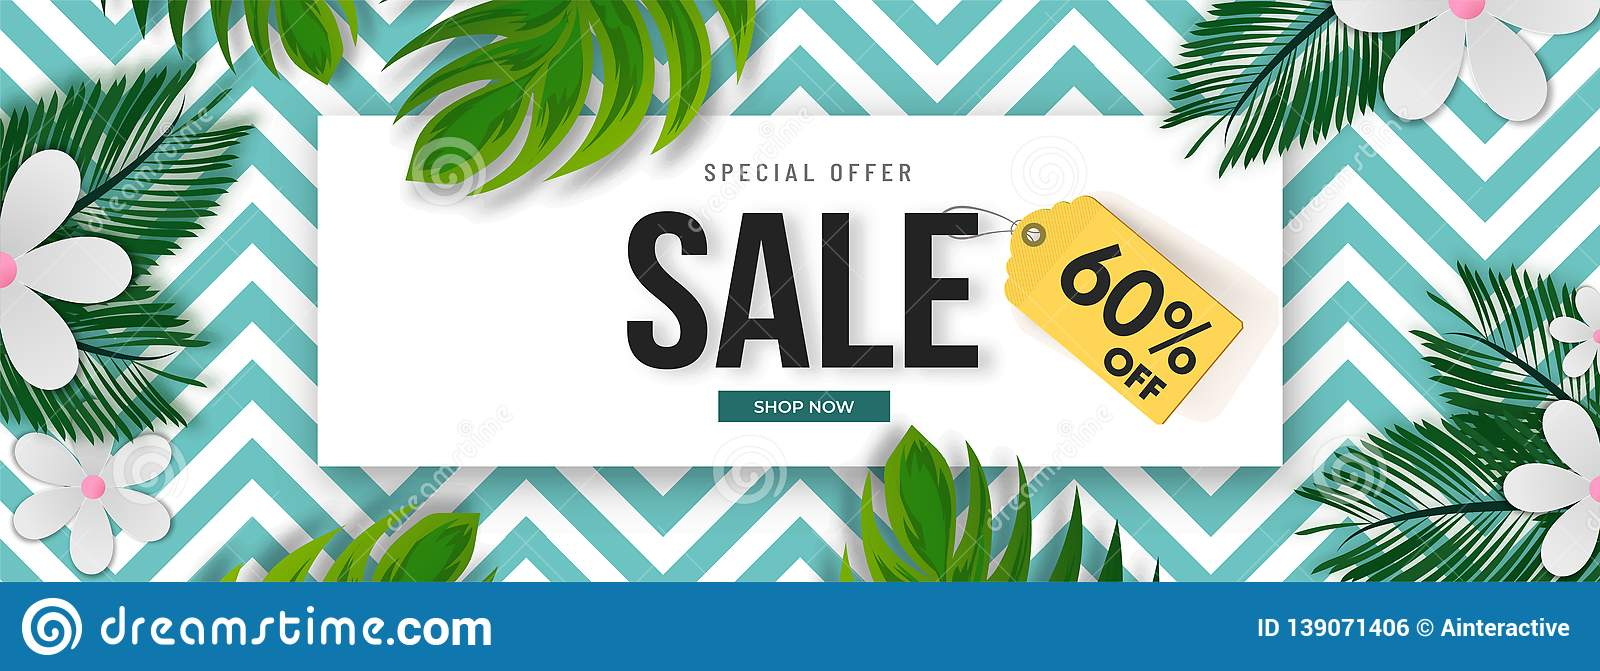 Advertising Sale Banner Or Header Design With 60 Discount Offer And Tropical Leaves Flowers Stock Illustration Illustration Of Flower Leaves 139071406 Red tropical sunset ultra hd desktop background wallpaper for 4k uhd tv. https www dreamstime com advertising sale banner header design discount offer tropical leaves flowers decorated abstract background image139071406